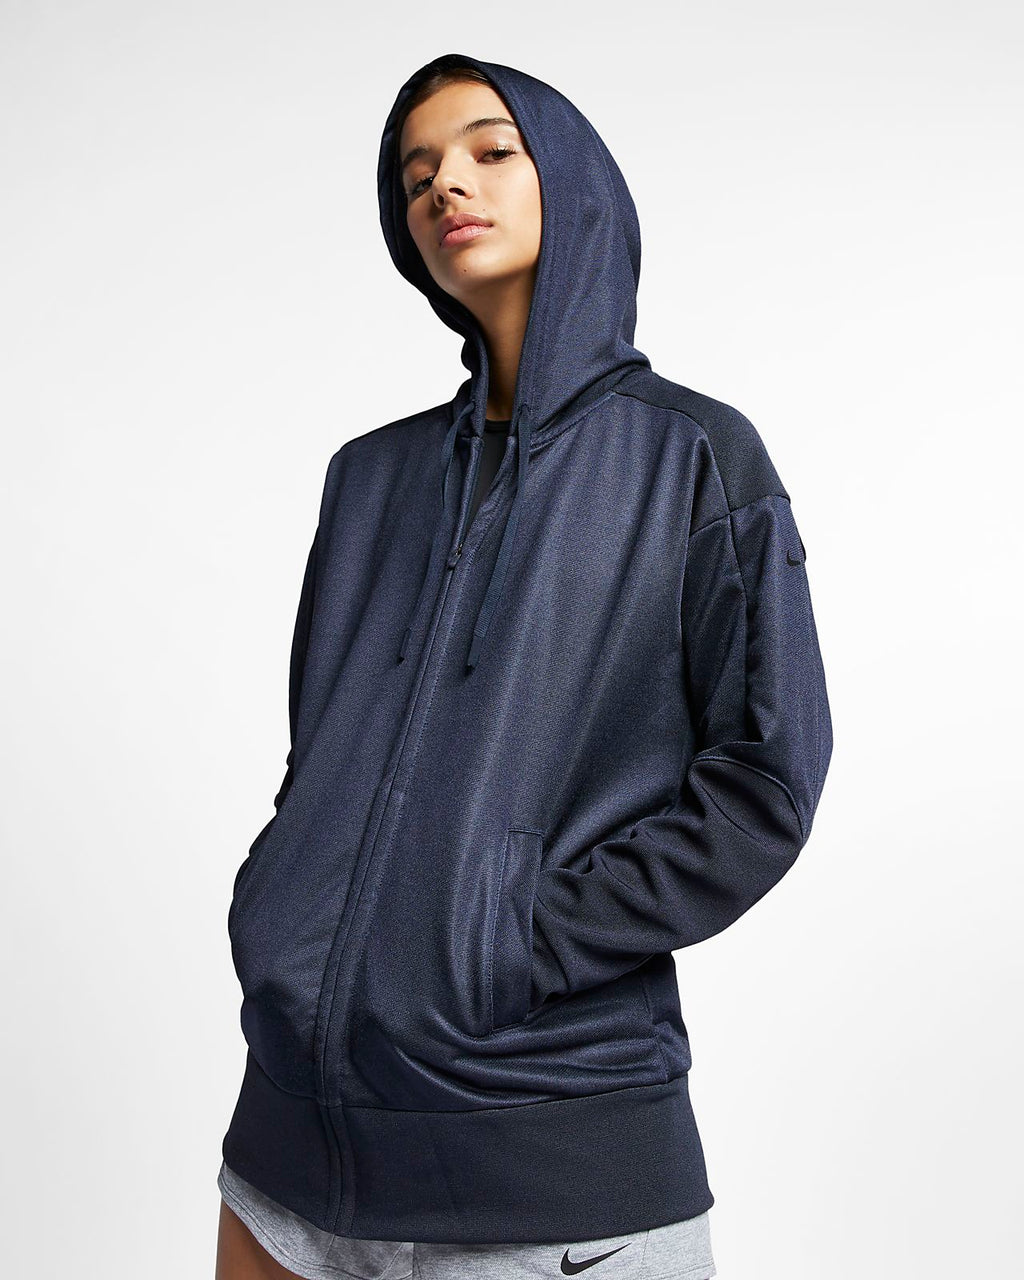 Women's.Nike Full-Zip Training Shimmer Hoodie      929832-451